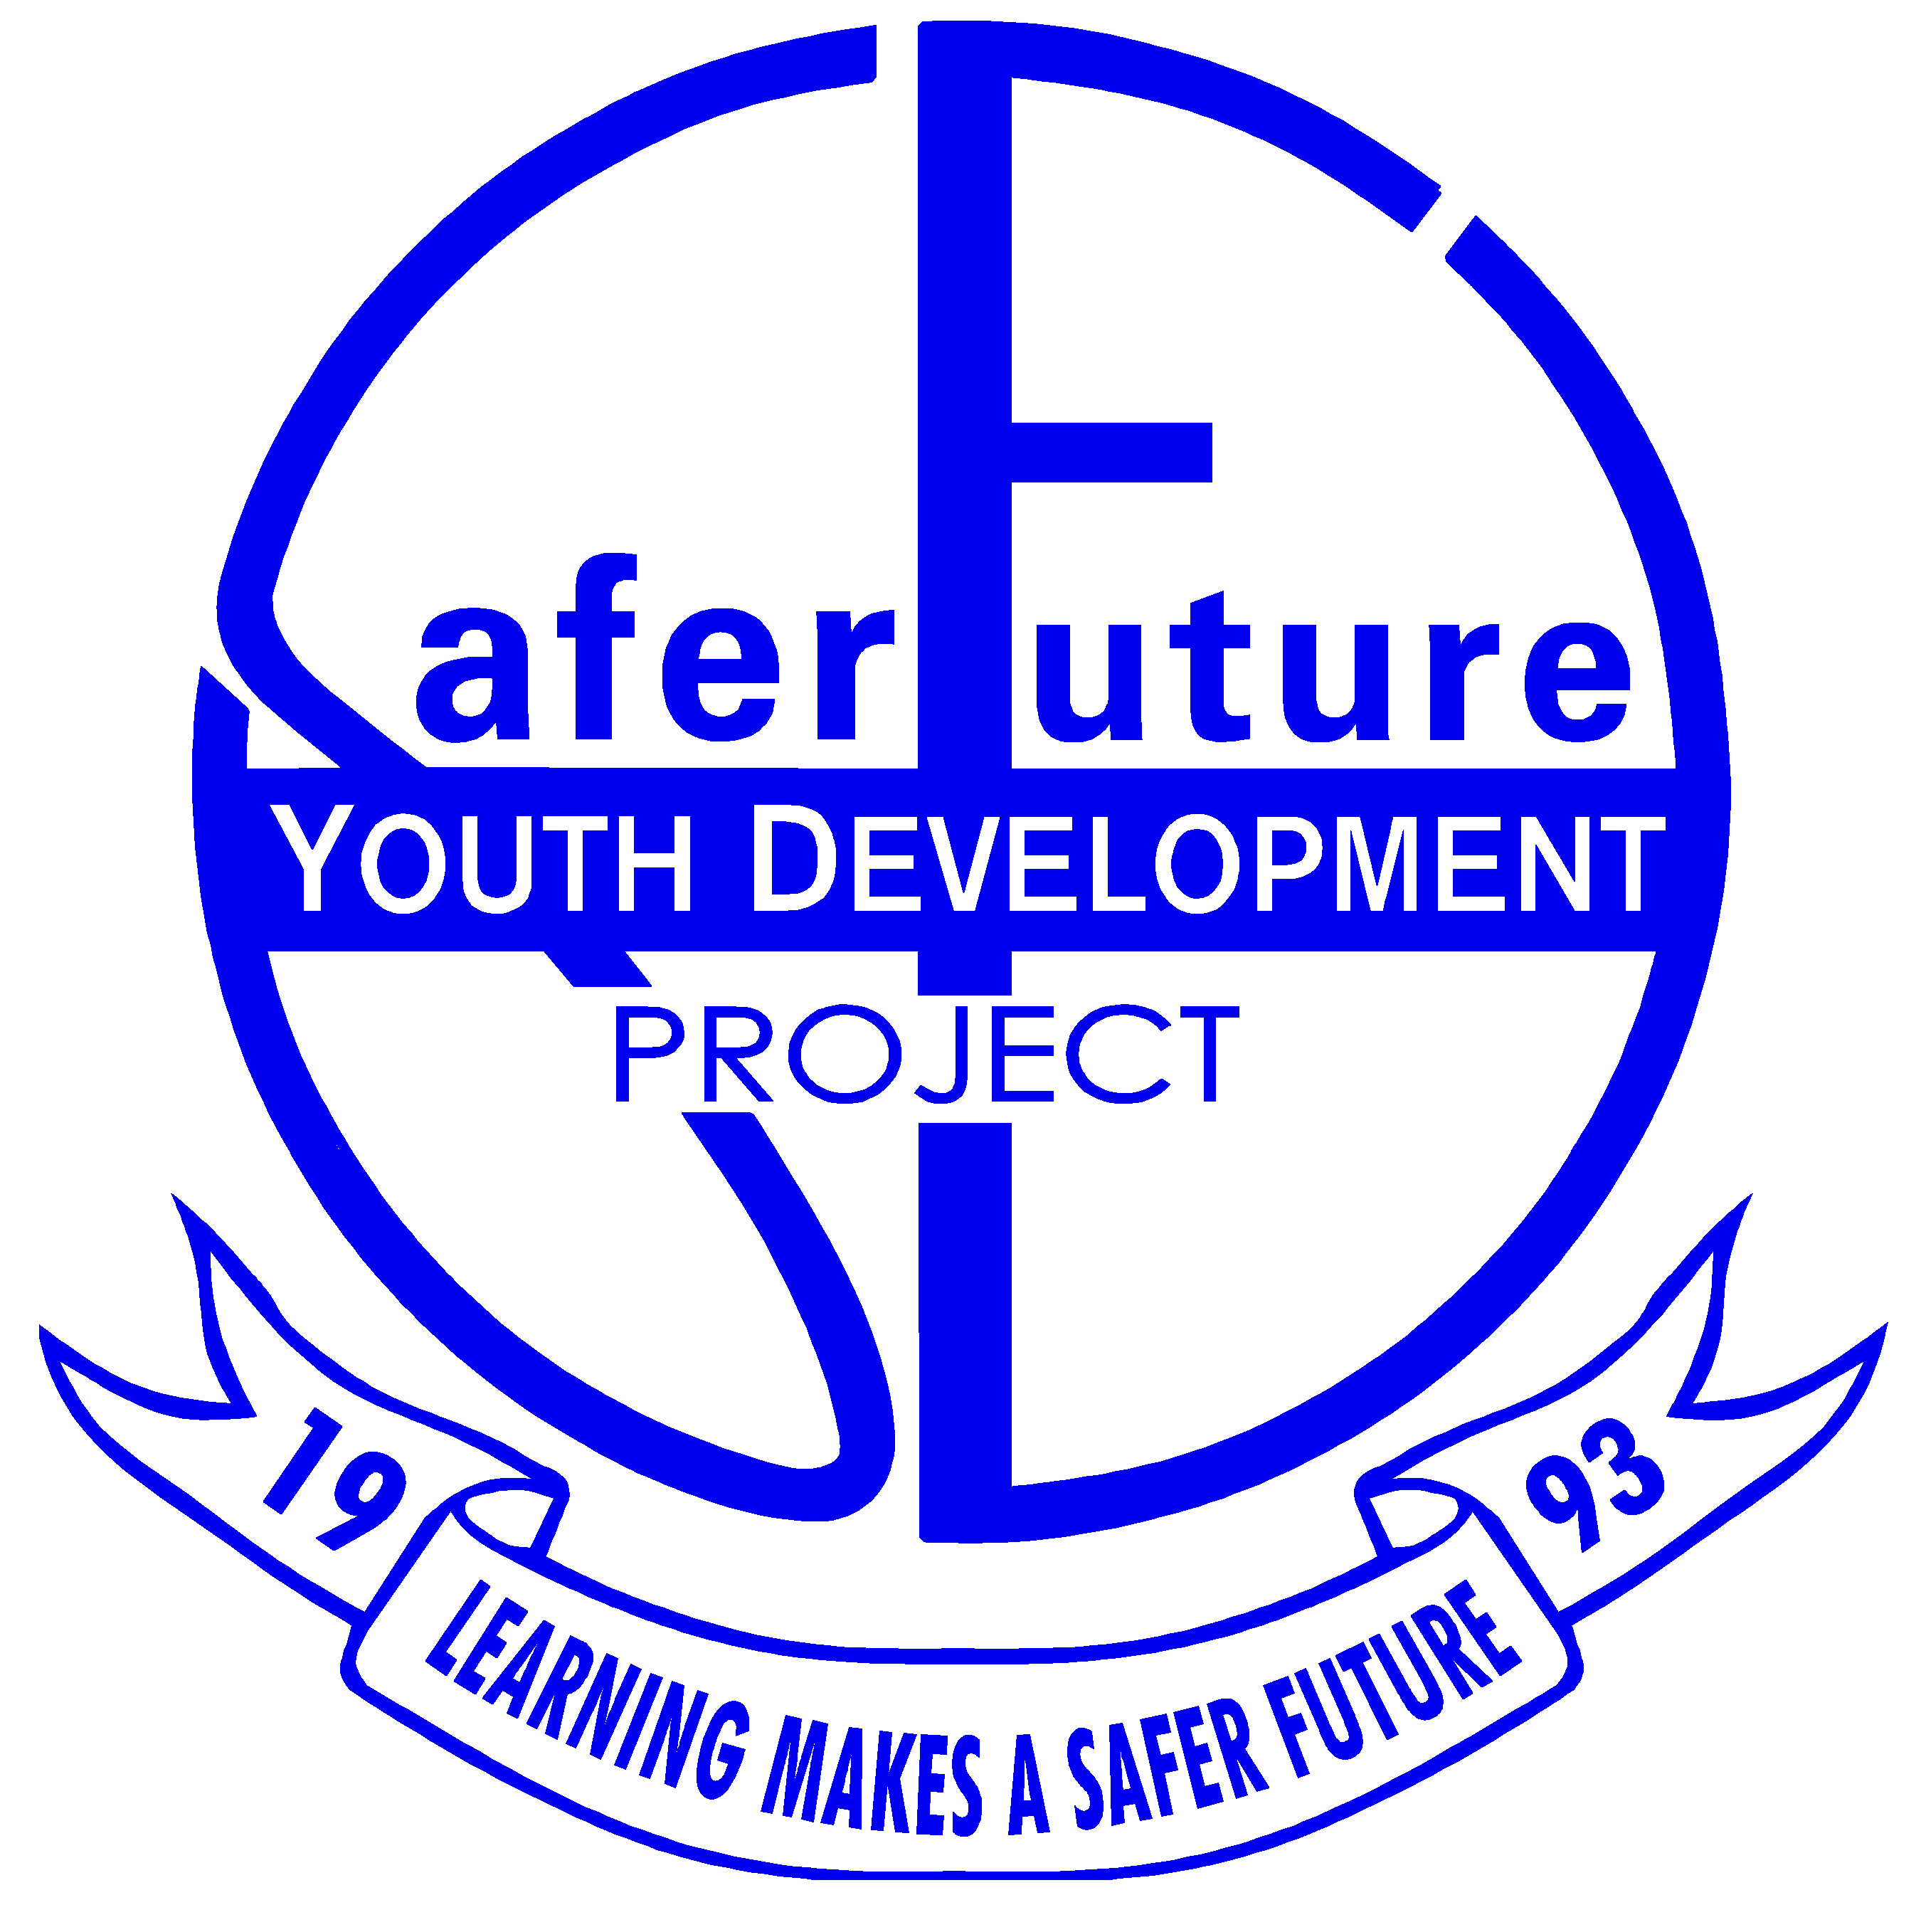 Safer Future Youth Development Project